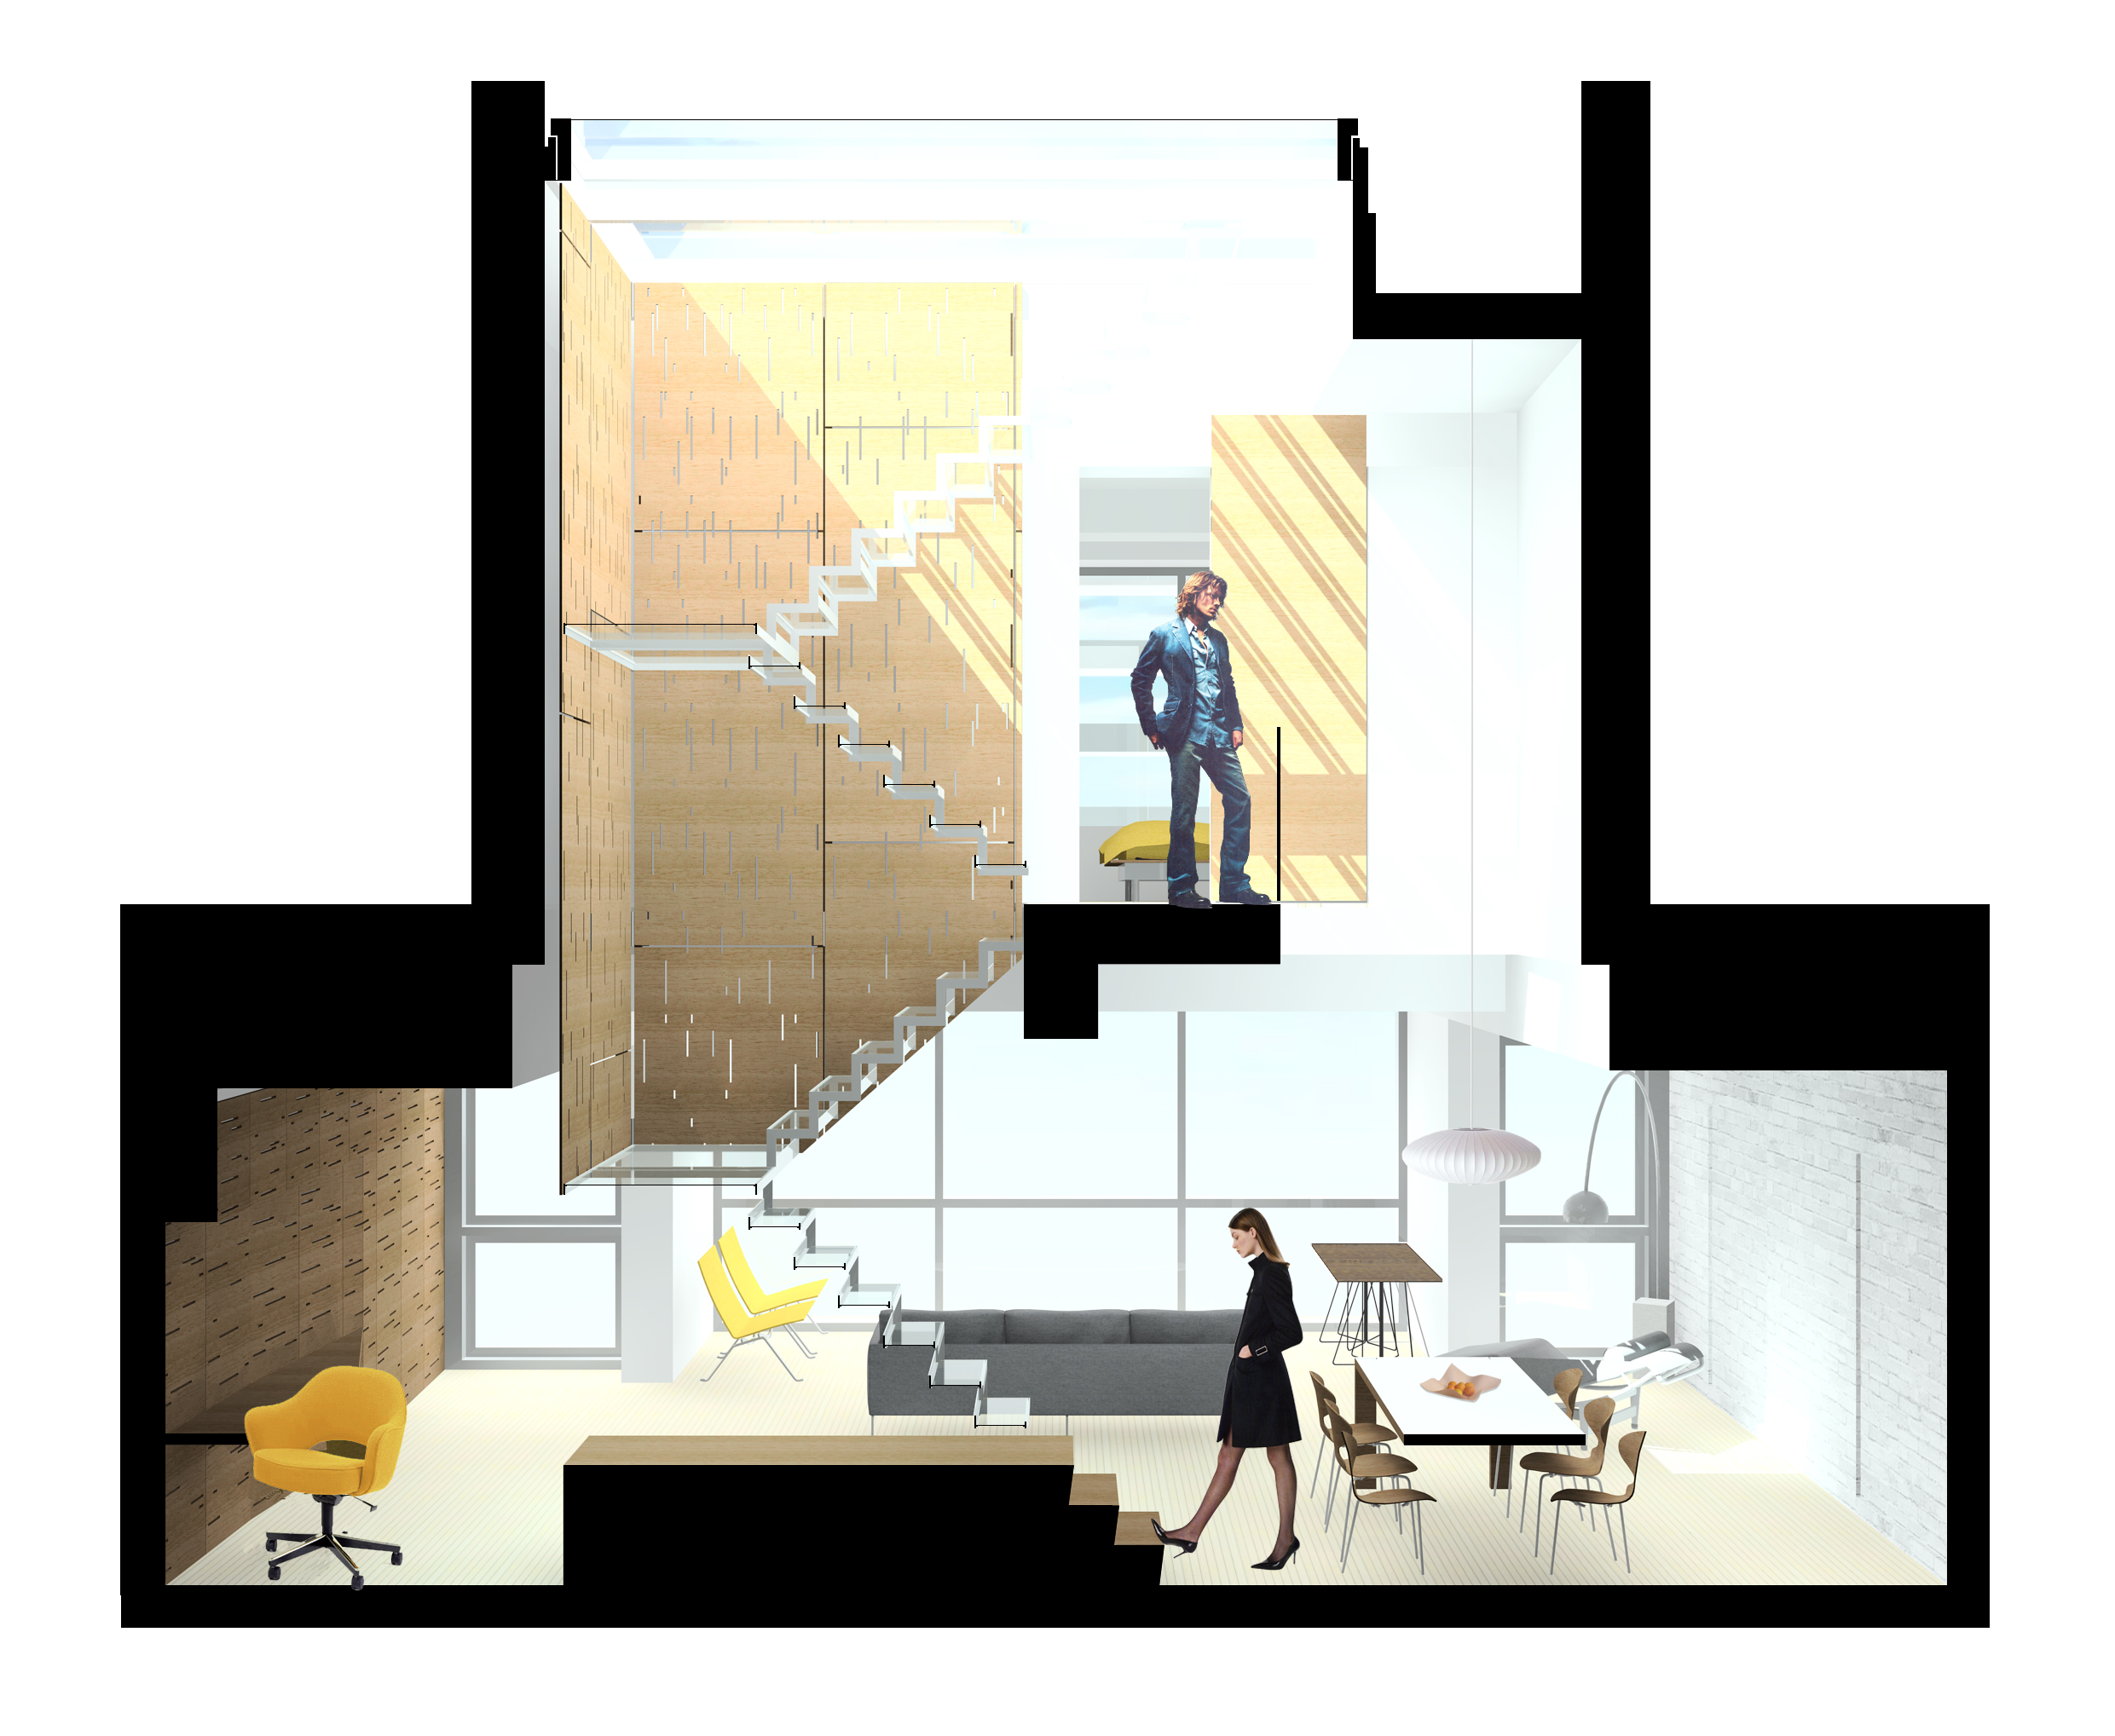 2481x2037 67a2 Section Perspective Drawings As An Architectural Drawing Loft